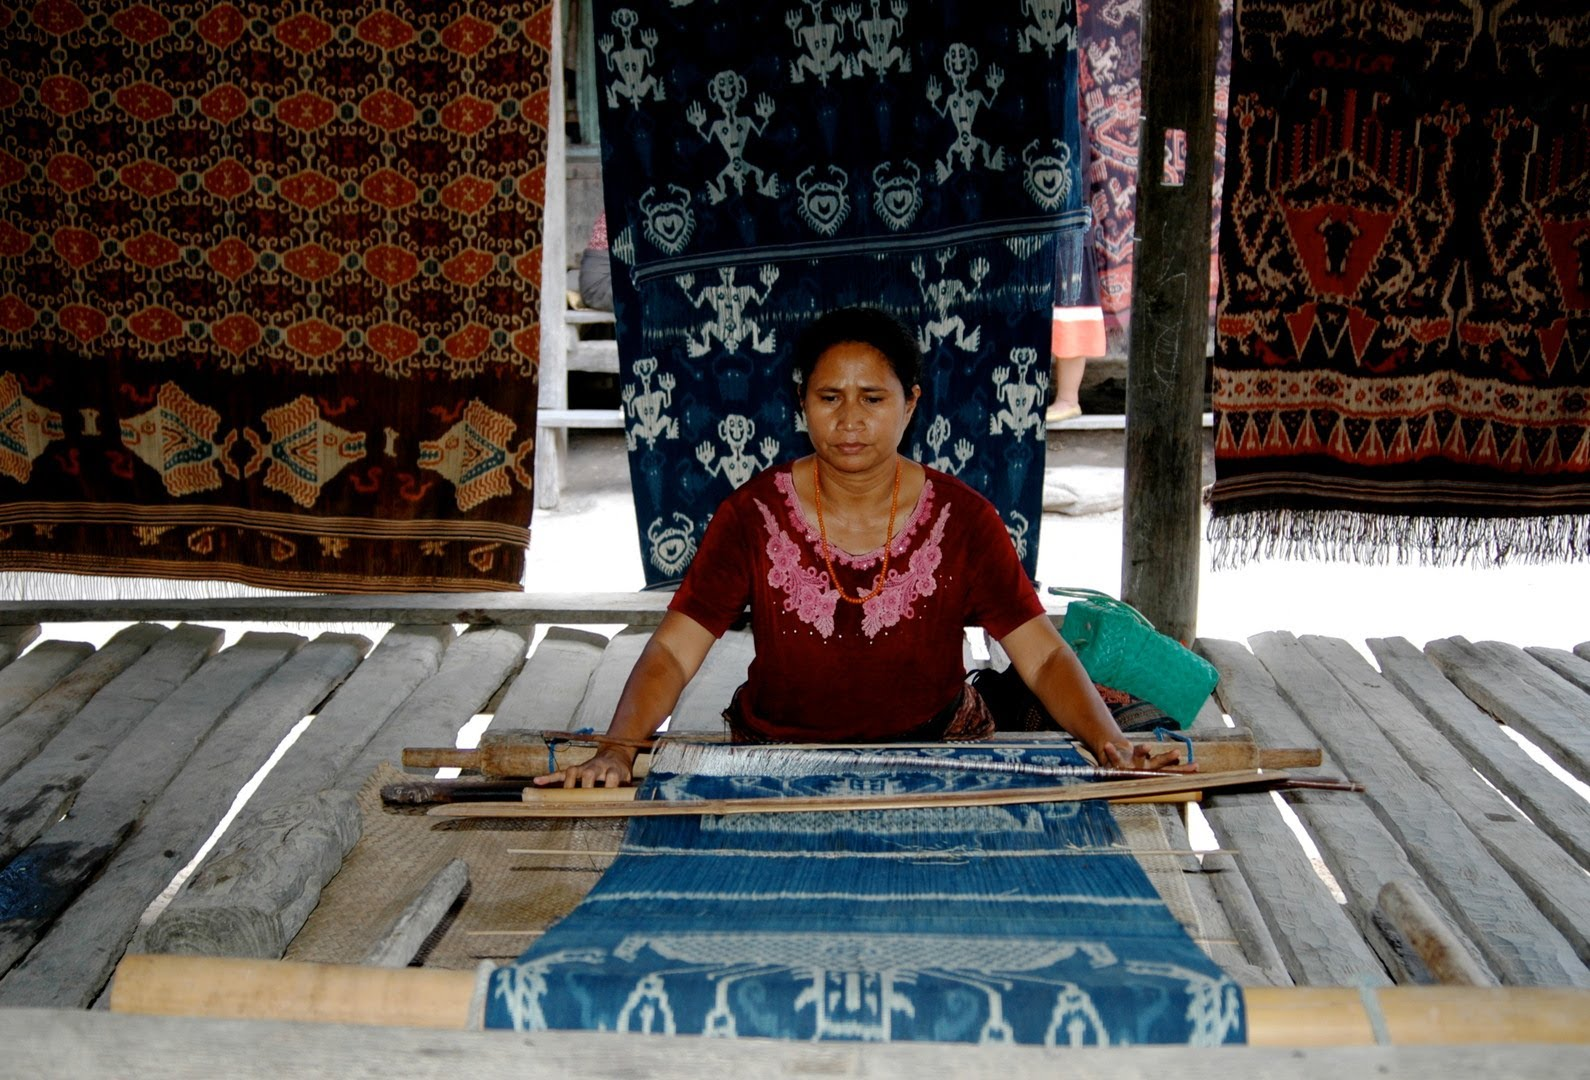 Ikat is a dyeing technique used to pattern fabric.